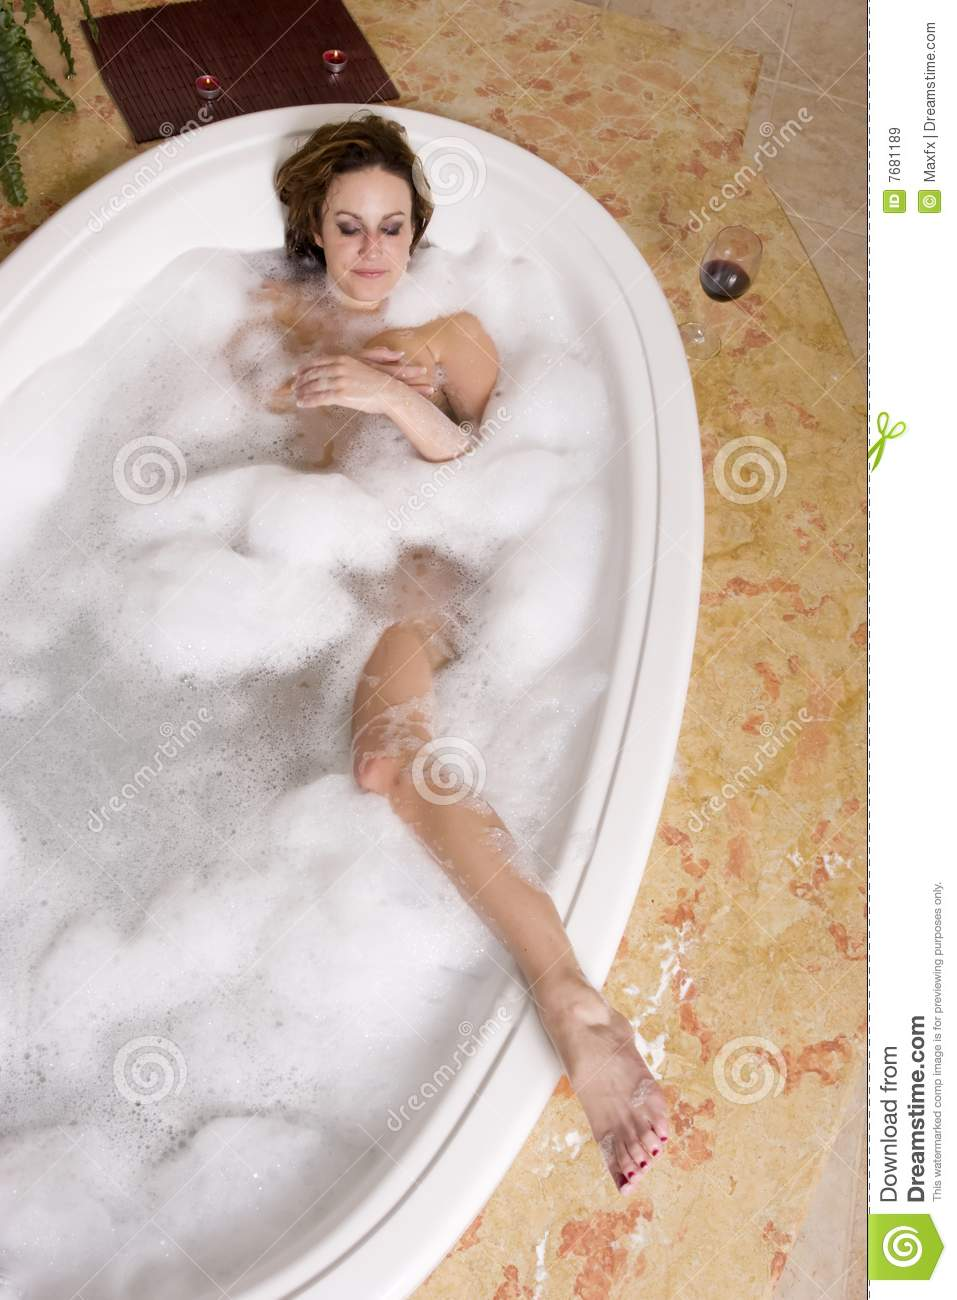 Cute girl in bubble bath. Portrait of cute young blond haired girl sat in bath with soap or foam bubbles on head royalty free stock images